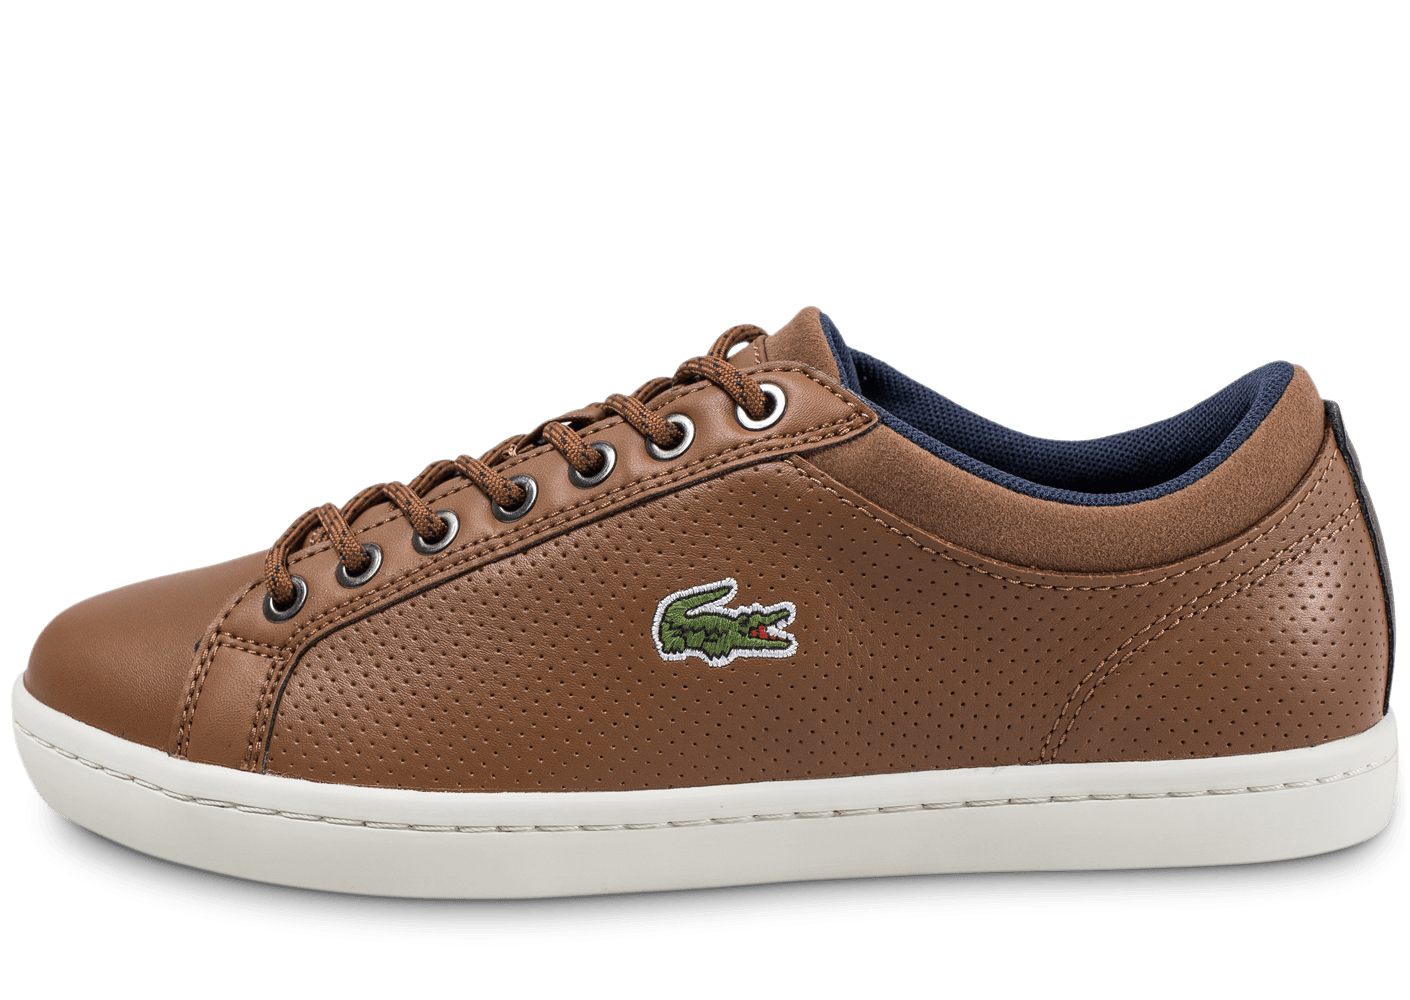 a35ee071fca Lacoste Straightset marron - Chaussures Baskets homme - Chausport